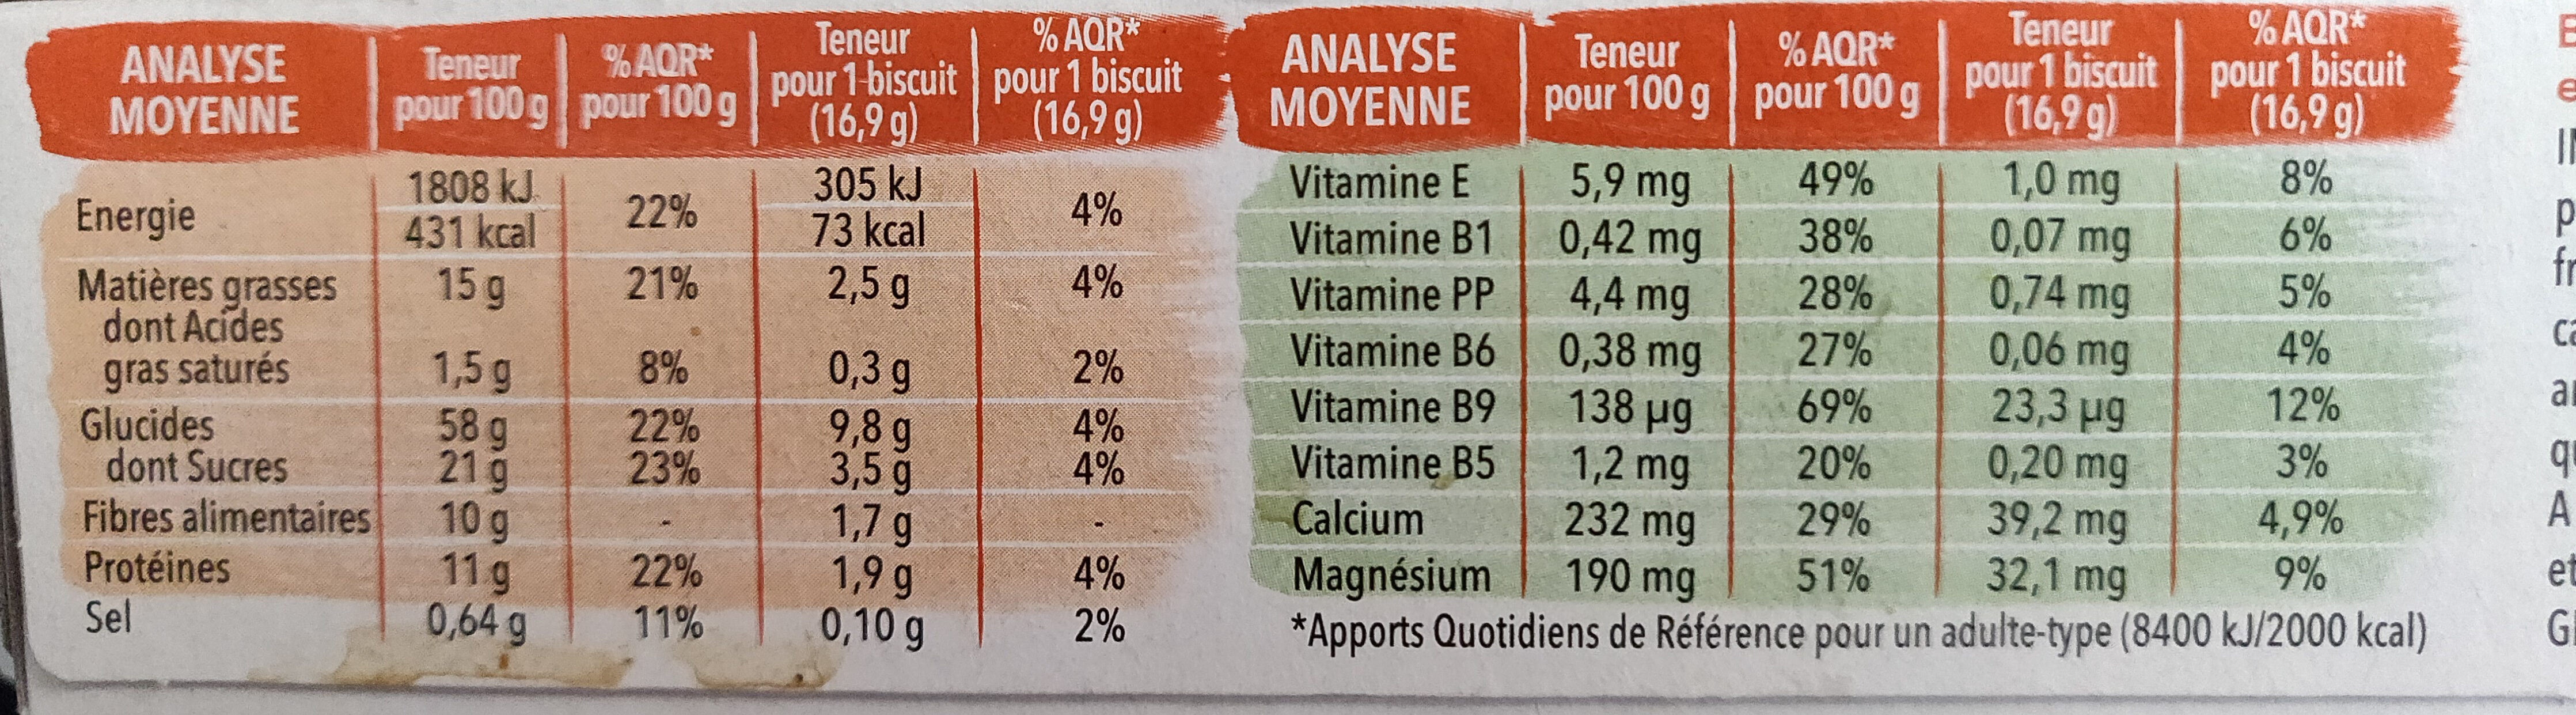 Biscuits Soja Figue - Informations nutritionnelles - fr